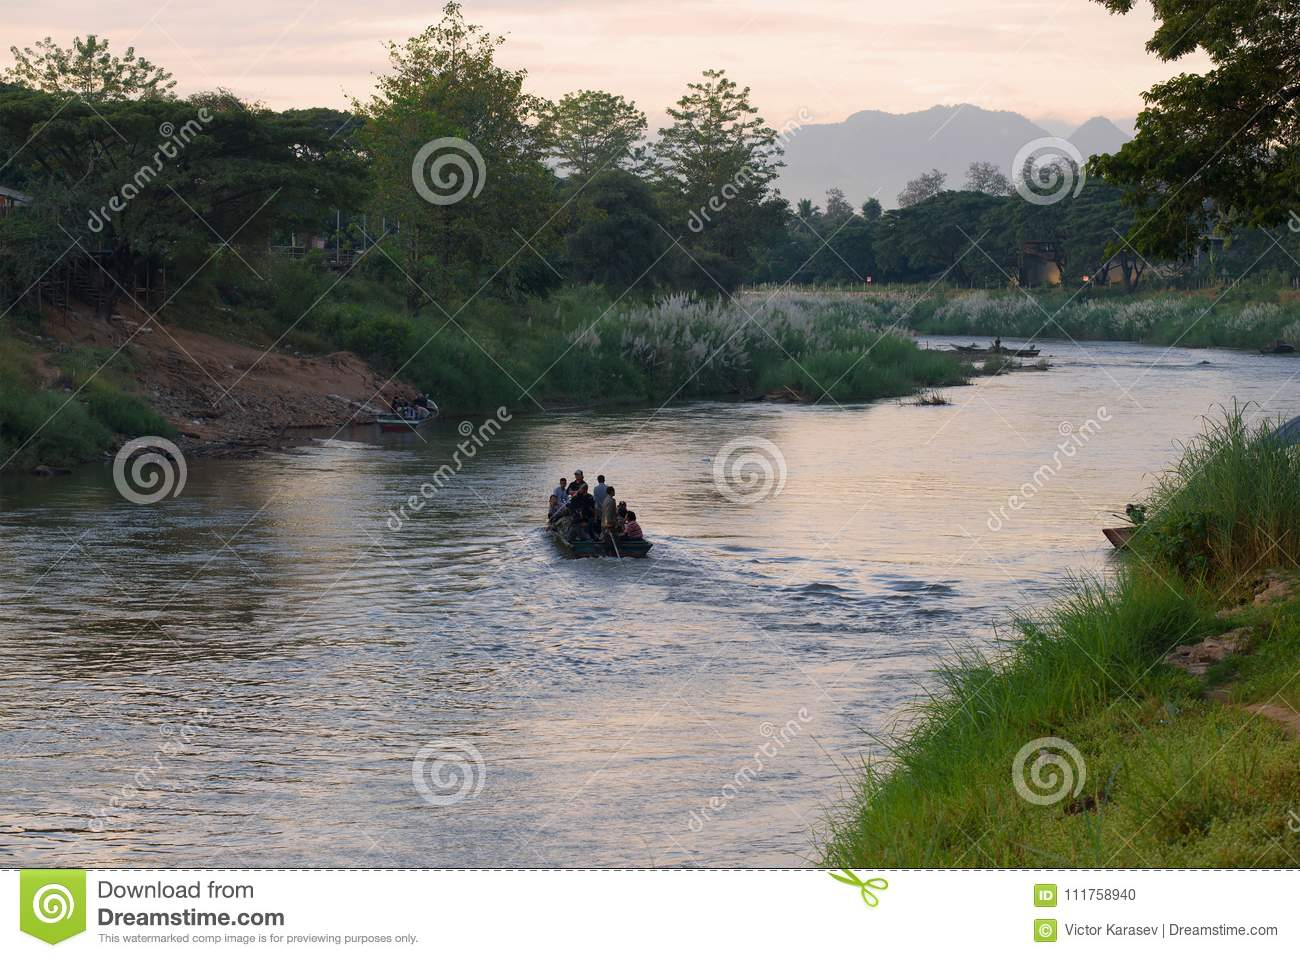 Morning on the boundary Menammey river. Burmans by the boat are illegally transported on the Thai side, Myanmar